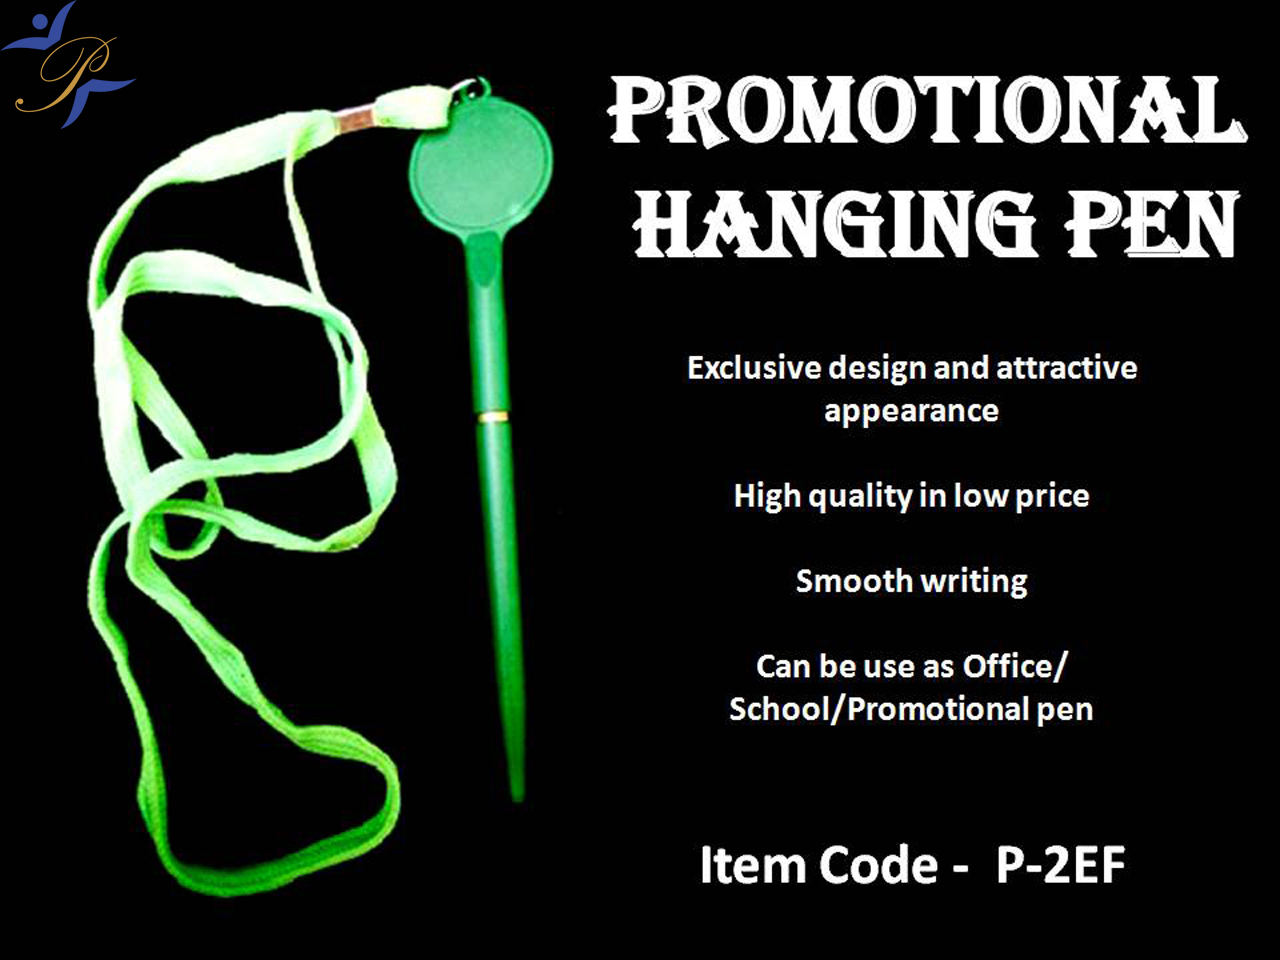 promotional hanging pen